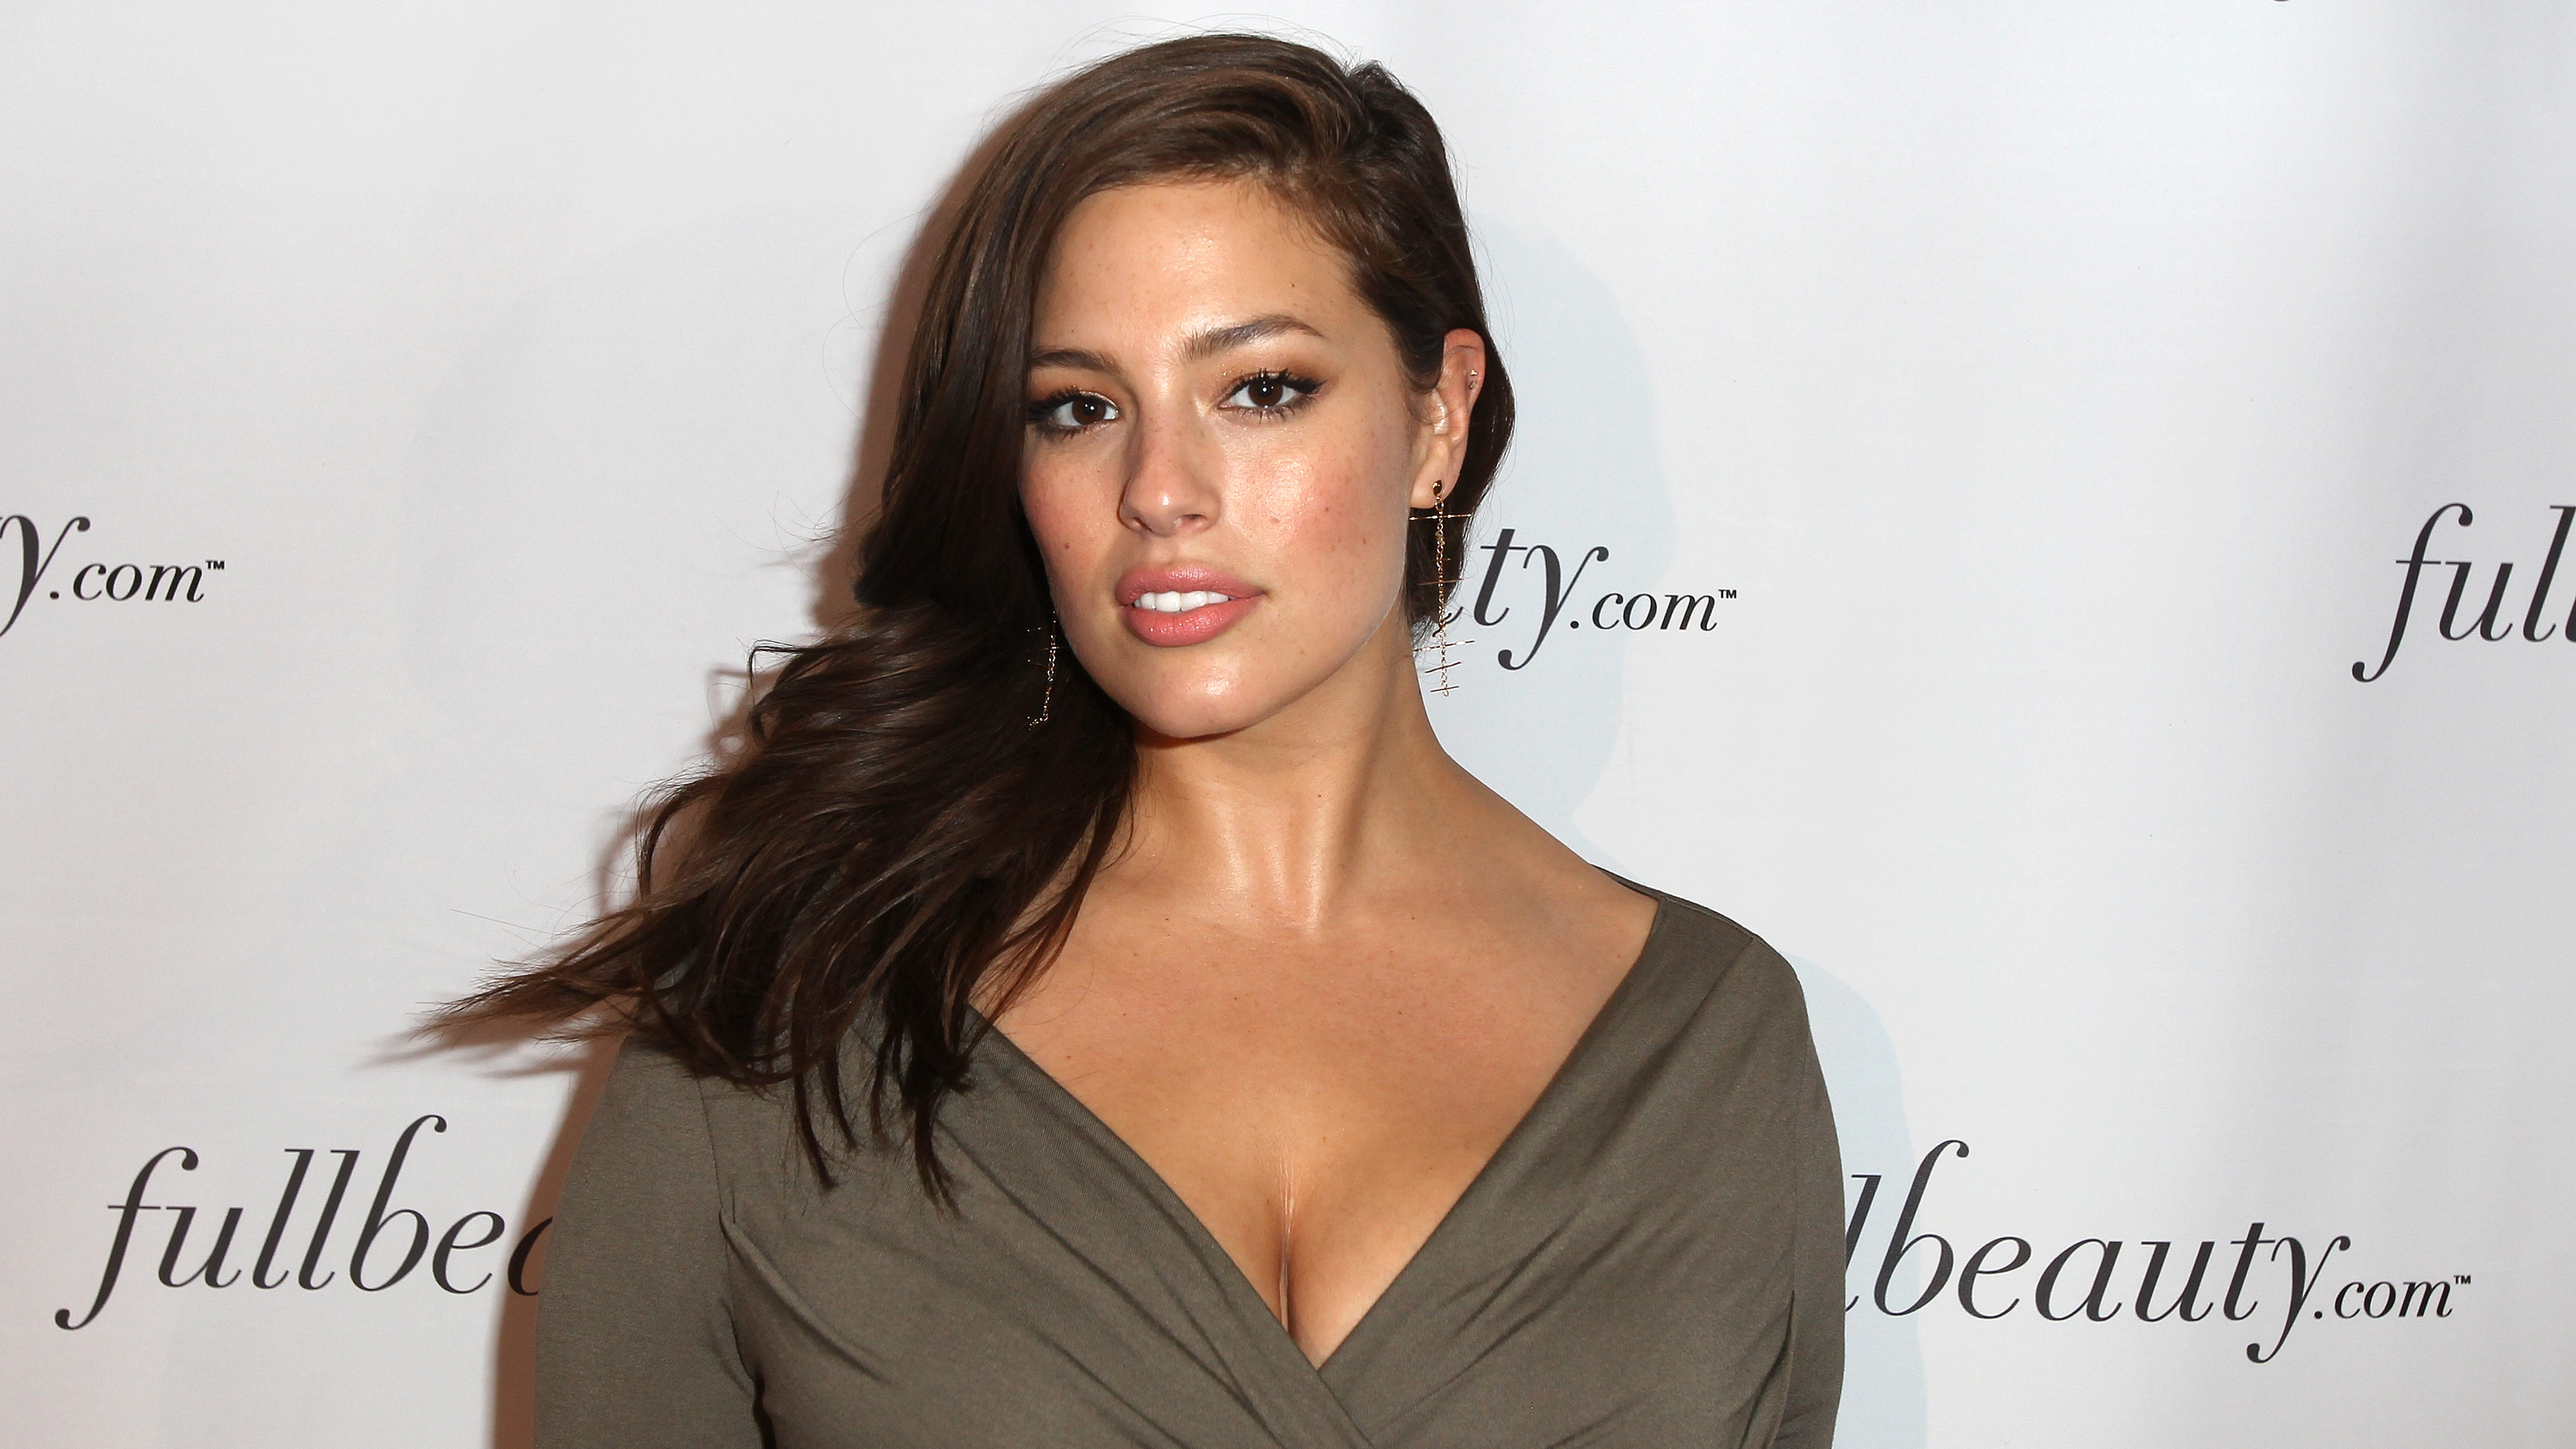 Ashley Graham attends the FULLBEAUTY Brands re-launching event of fullbeauty.com at Guastavino's on Thursday, April 2, 2015, in New York. (Photo by Donald Traill/Invision/AP)